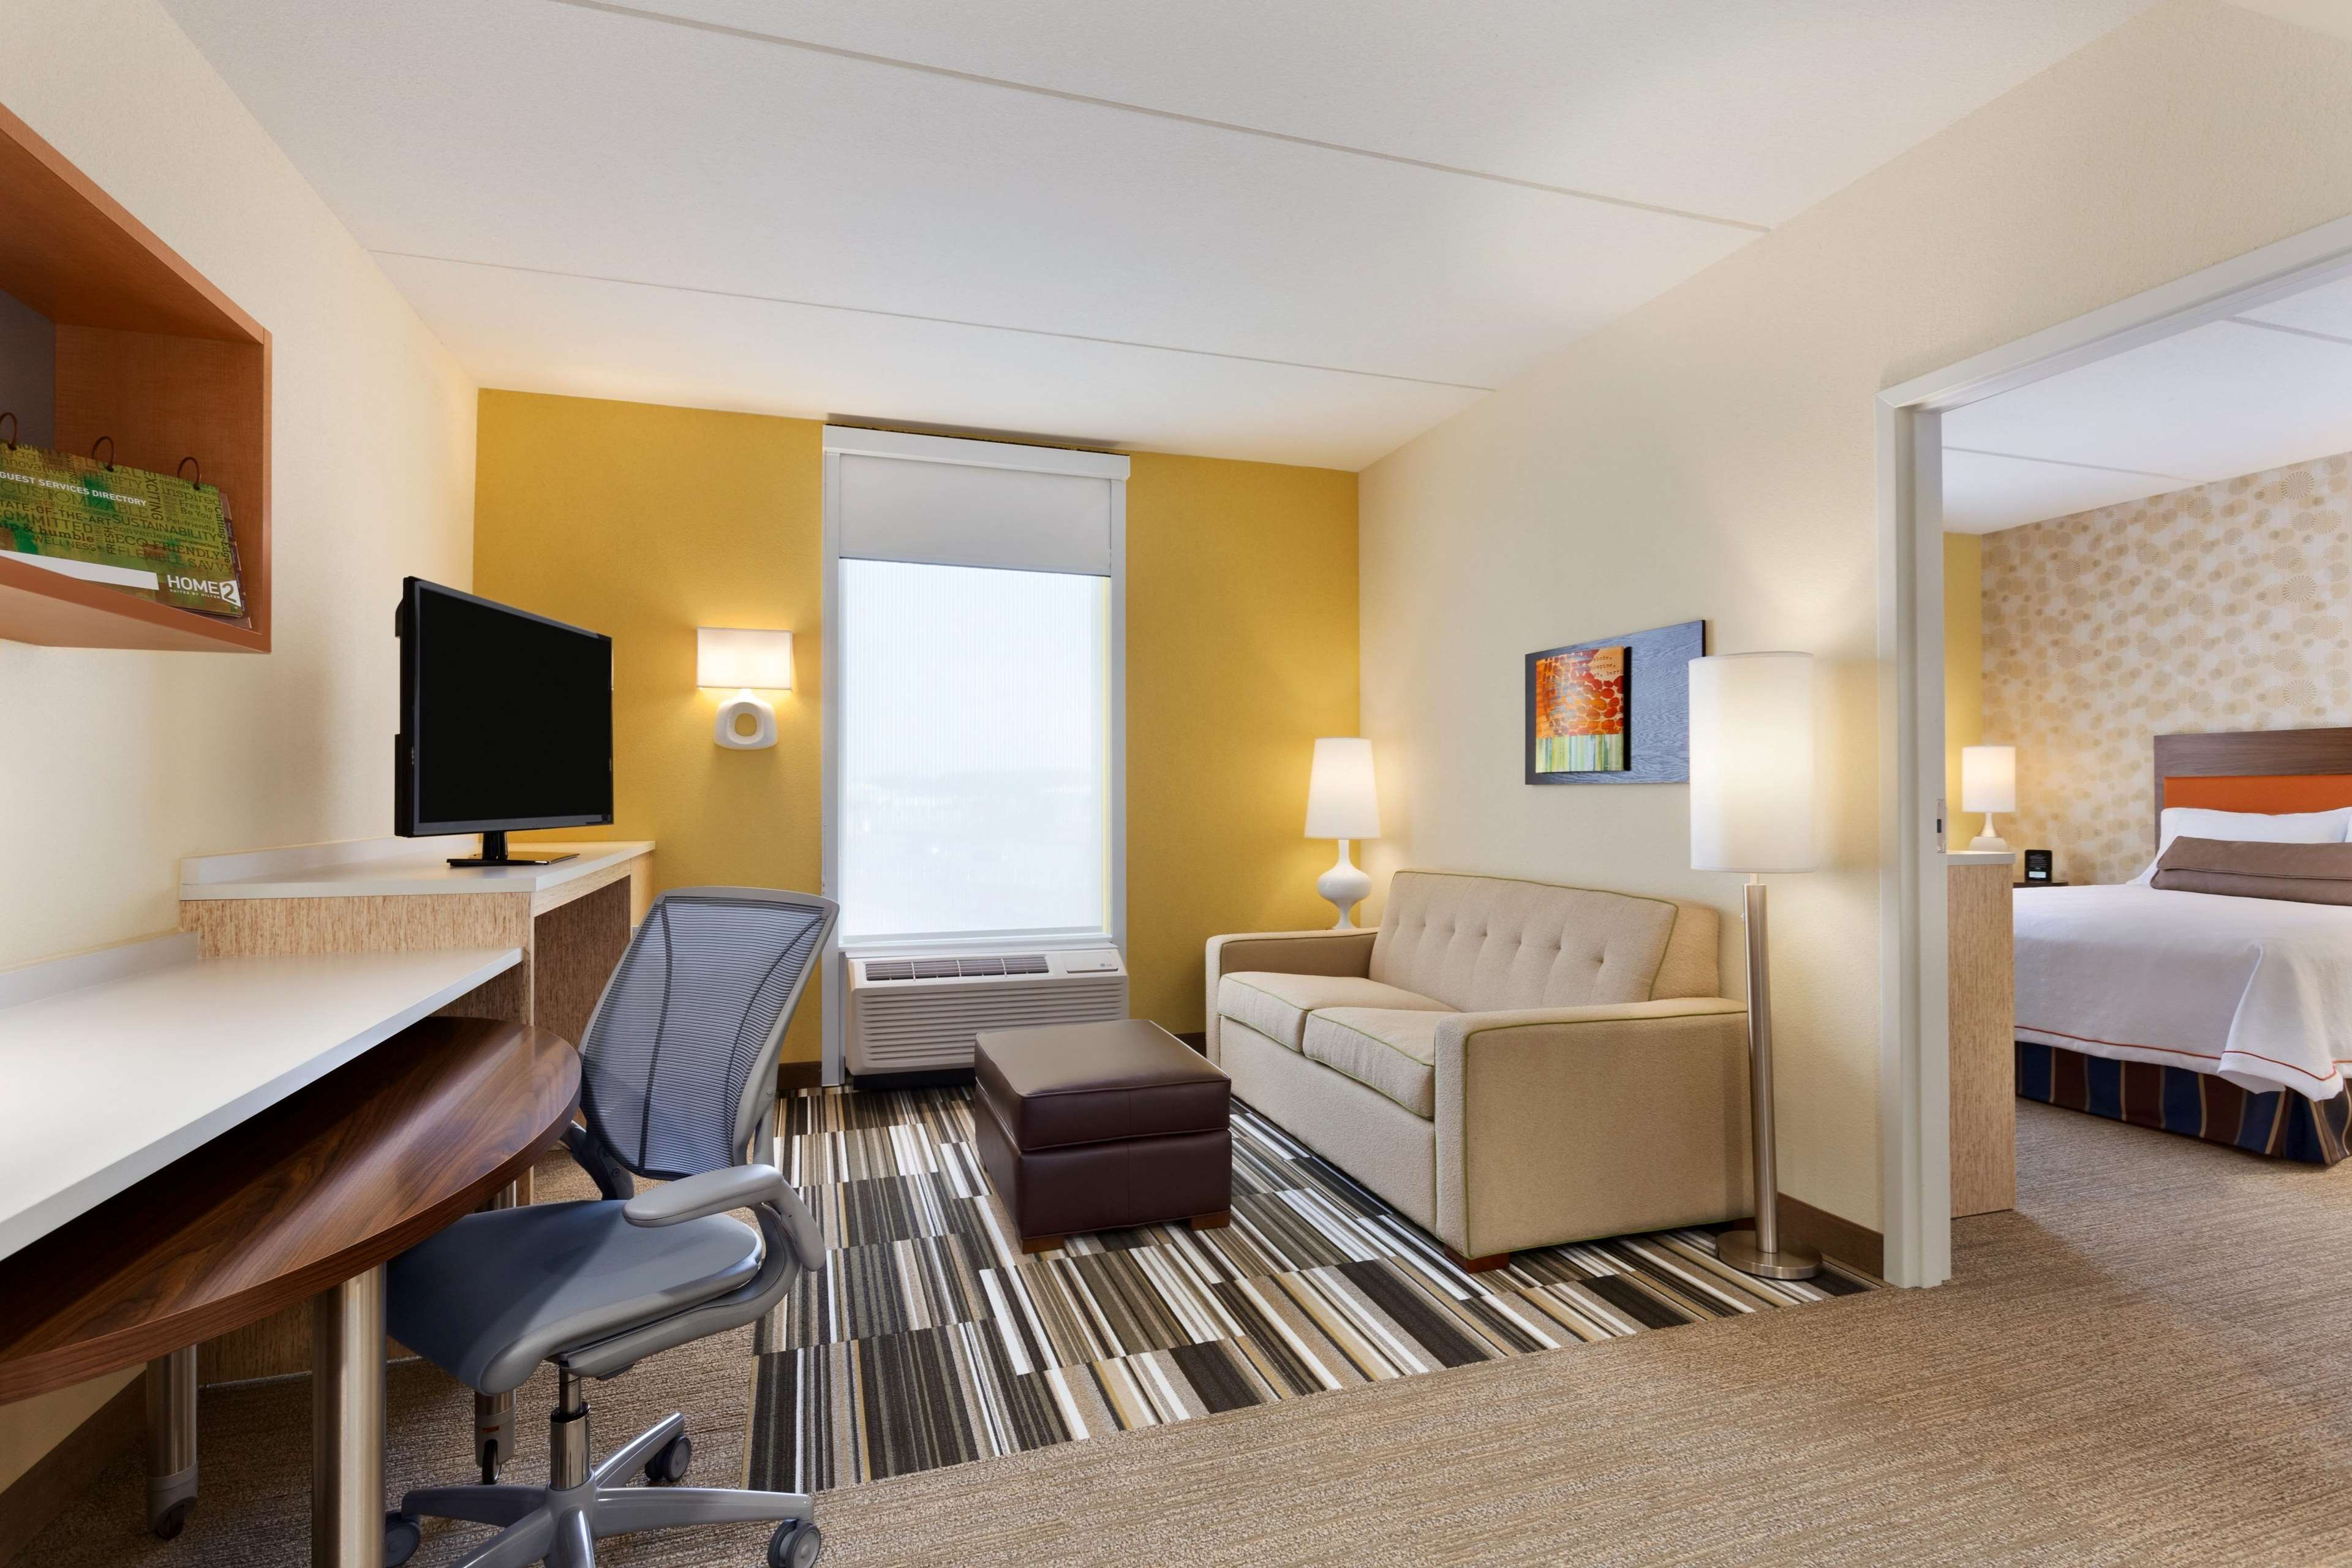 Home2 Suites by Hilton Baltimore / Aberdeen, MD image 10